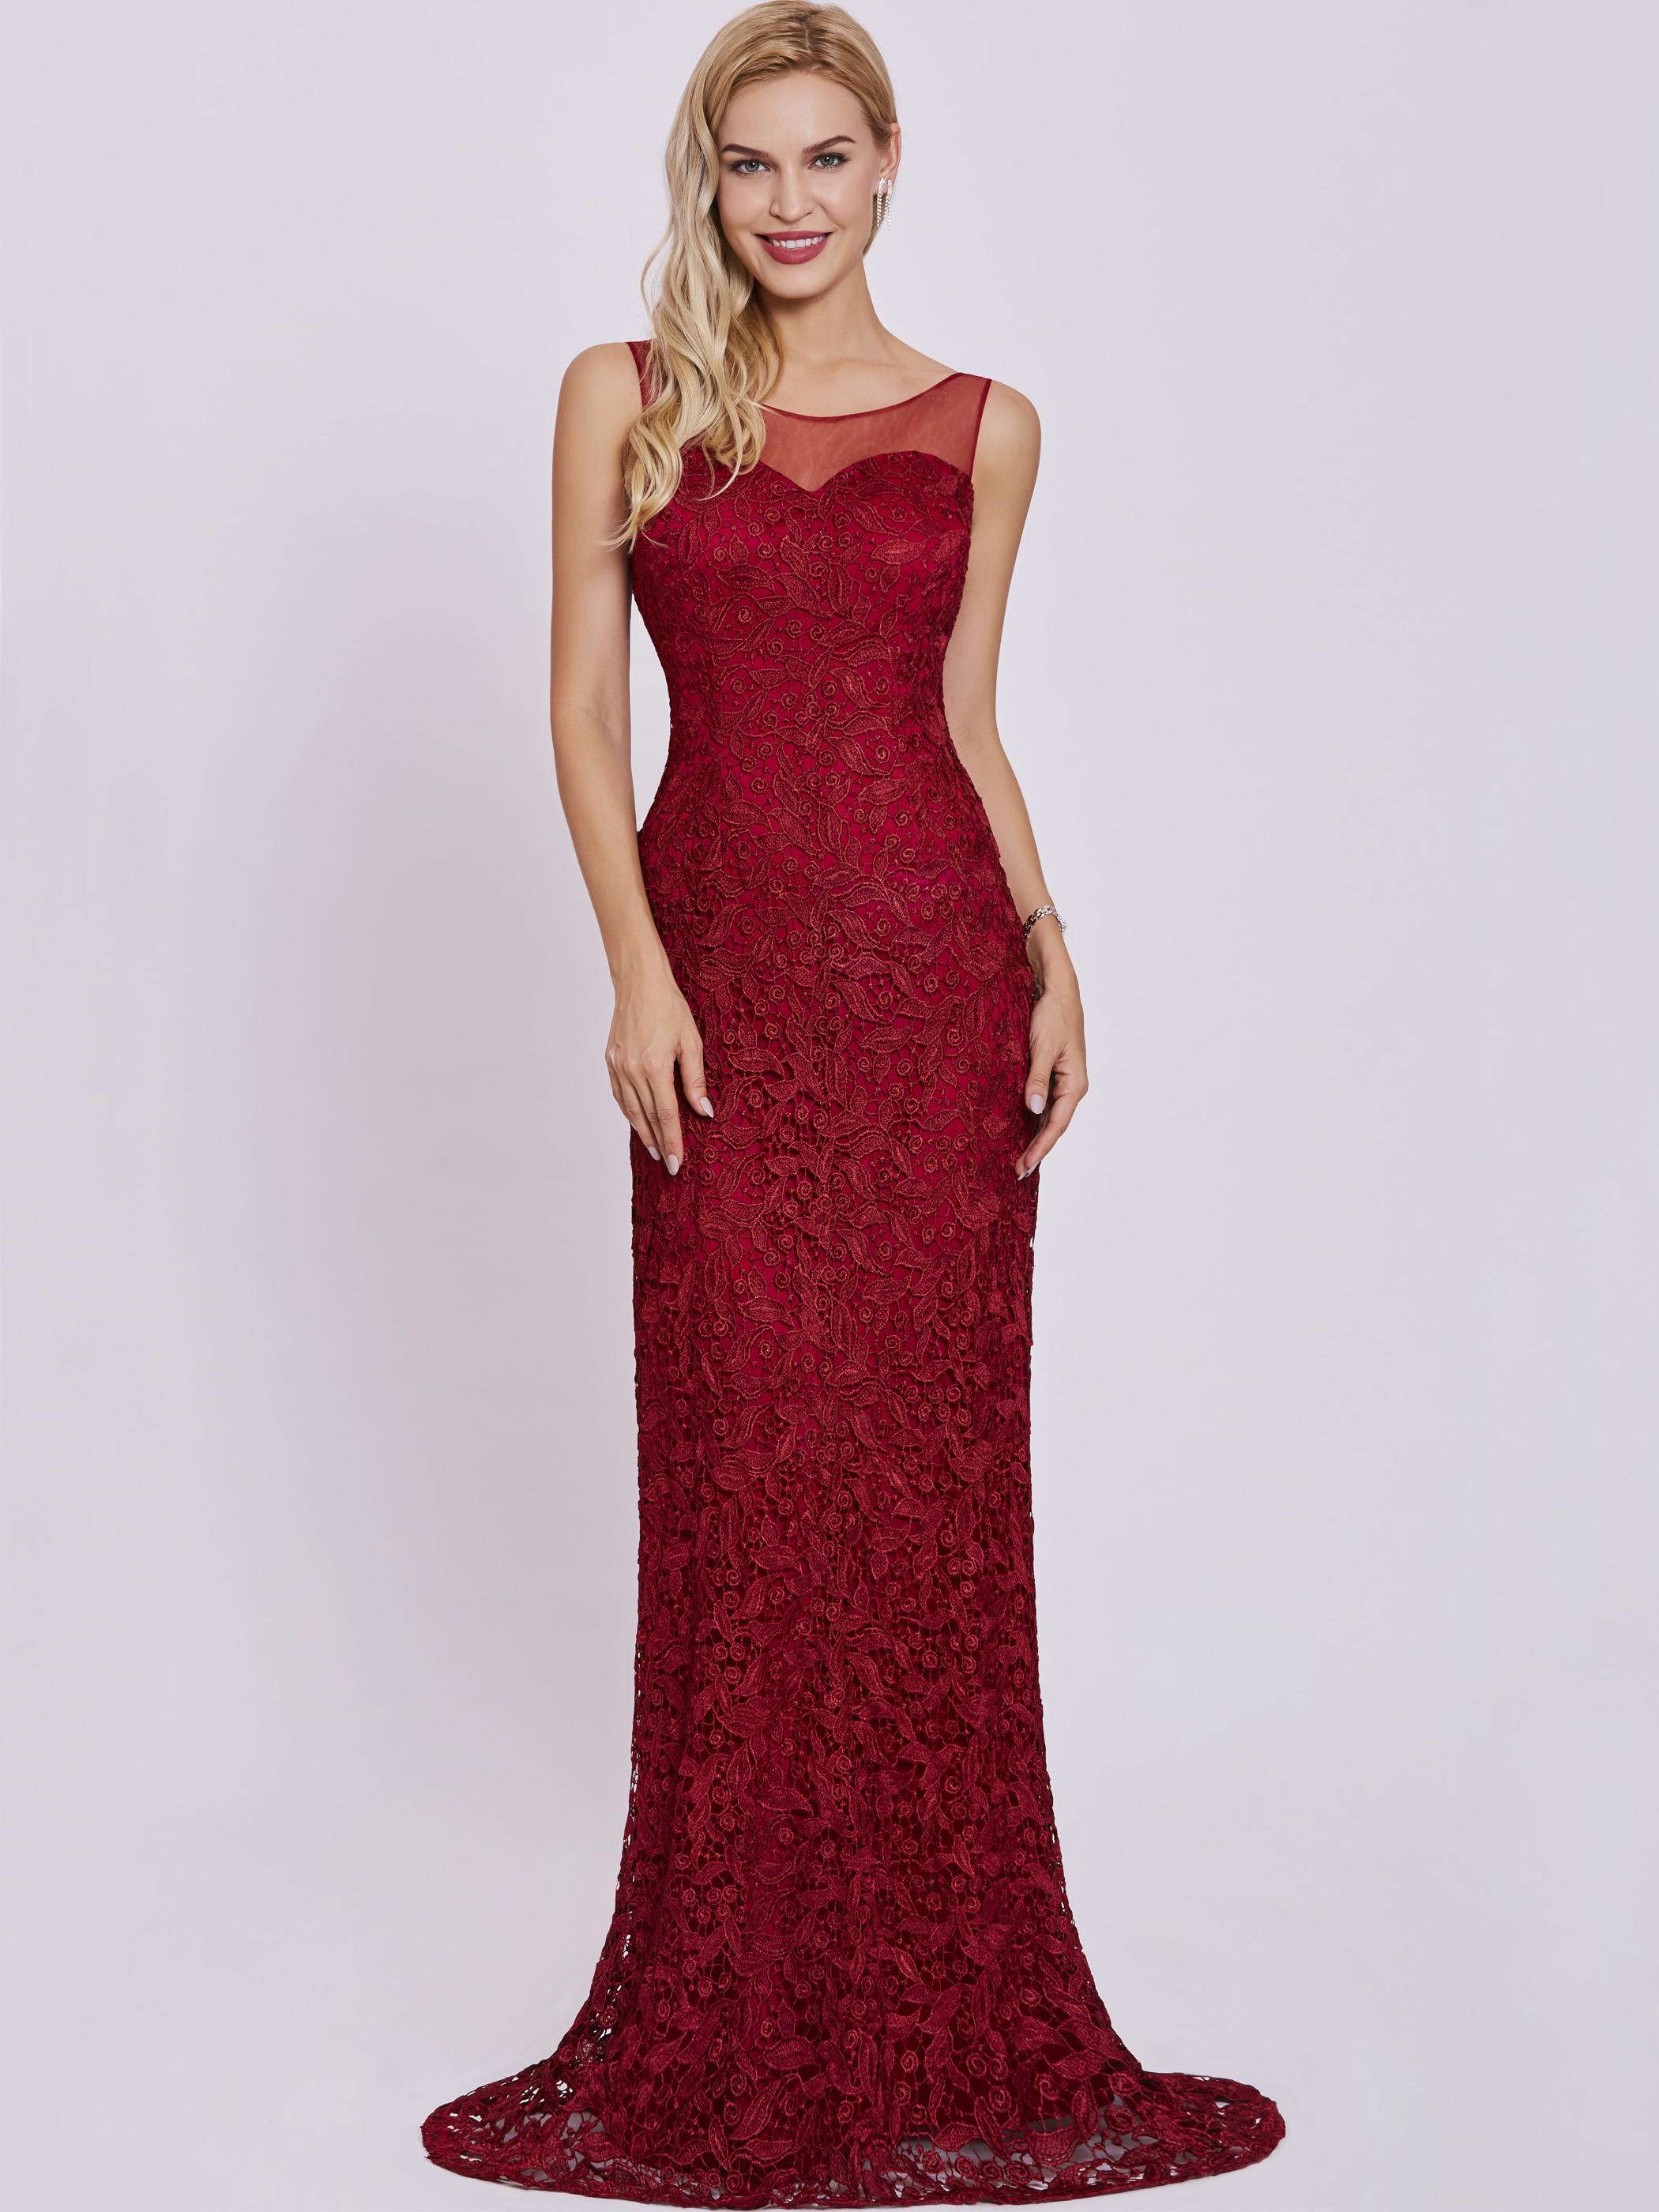 Dressv Scoop Neck Evening Dress Burgundy Sleeveless Sheath Floor Length Gown Women Lace Appliques Formal Long Evening Dresses